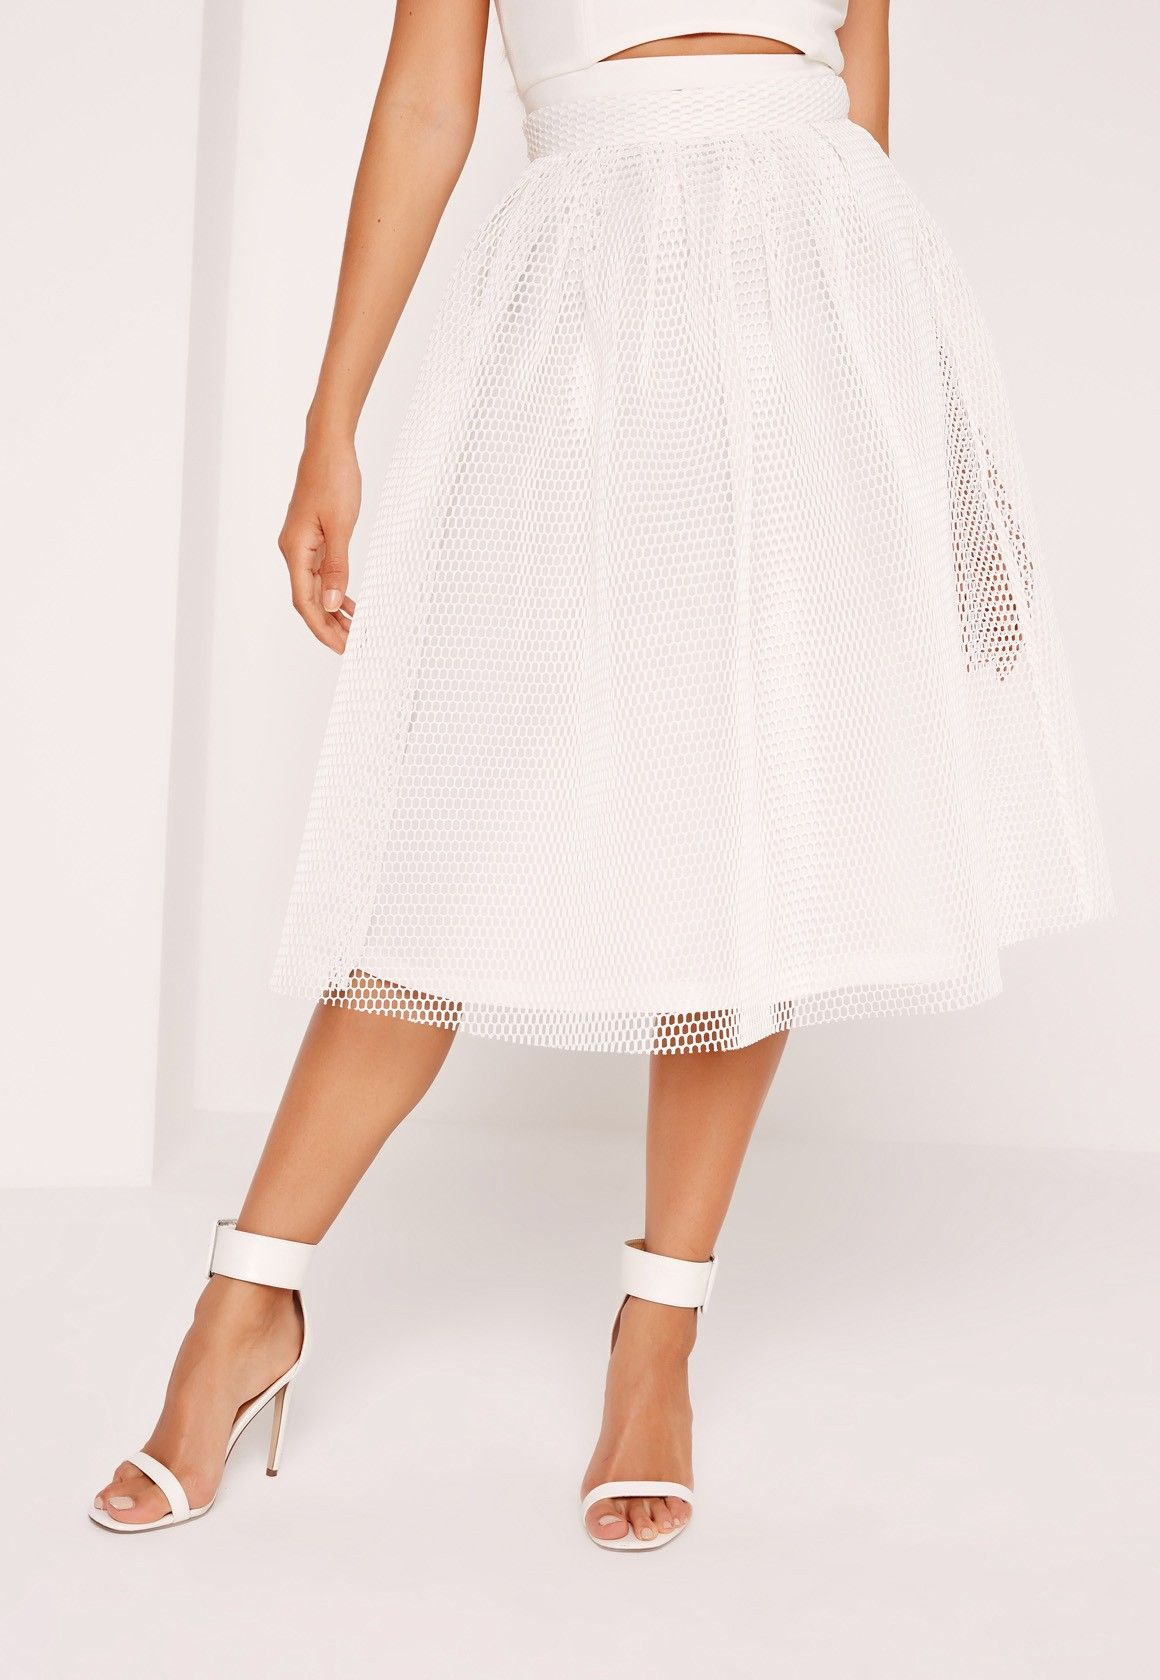 a9ceea7efaf3 Missguided - Mesh Full Airtex Midi Skirt White